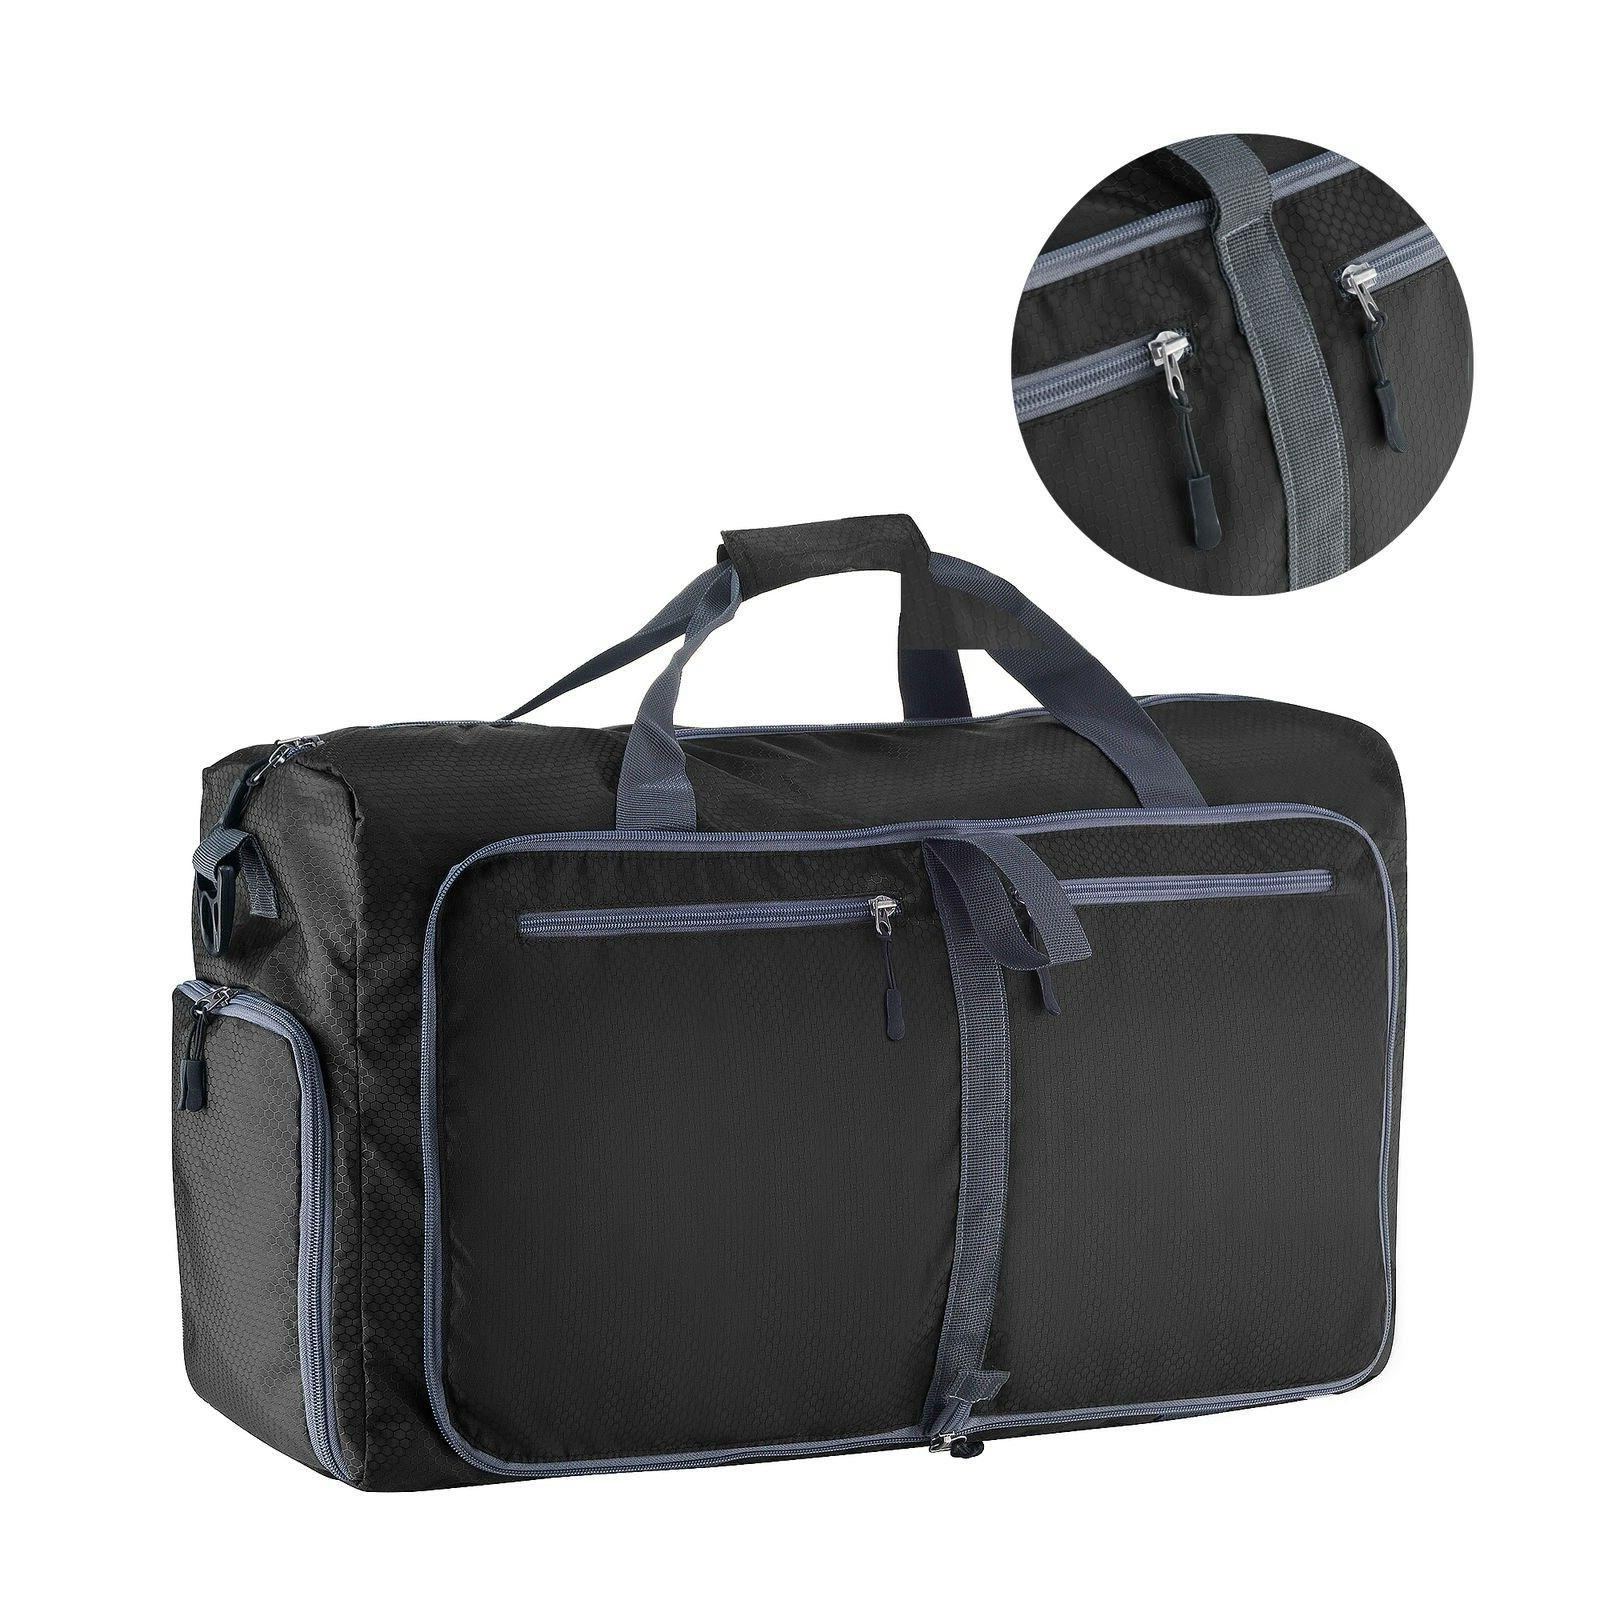 Villacera 24-Inch Traveling Duffel Bag | Folds Down Easy | B